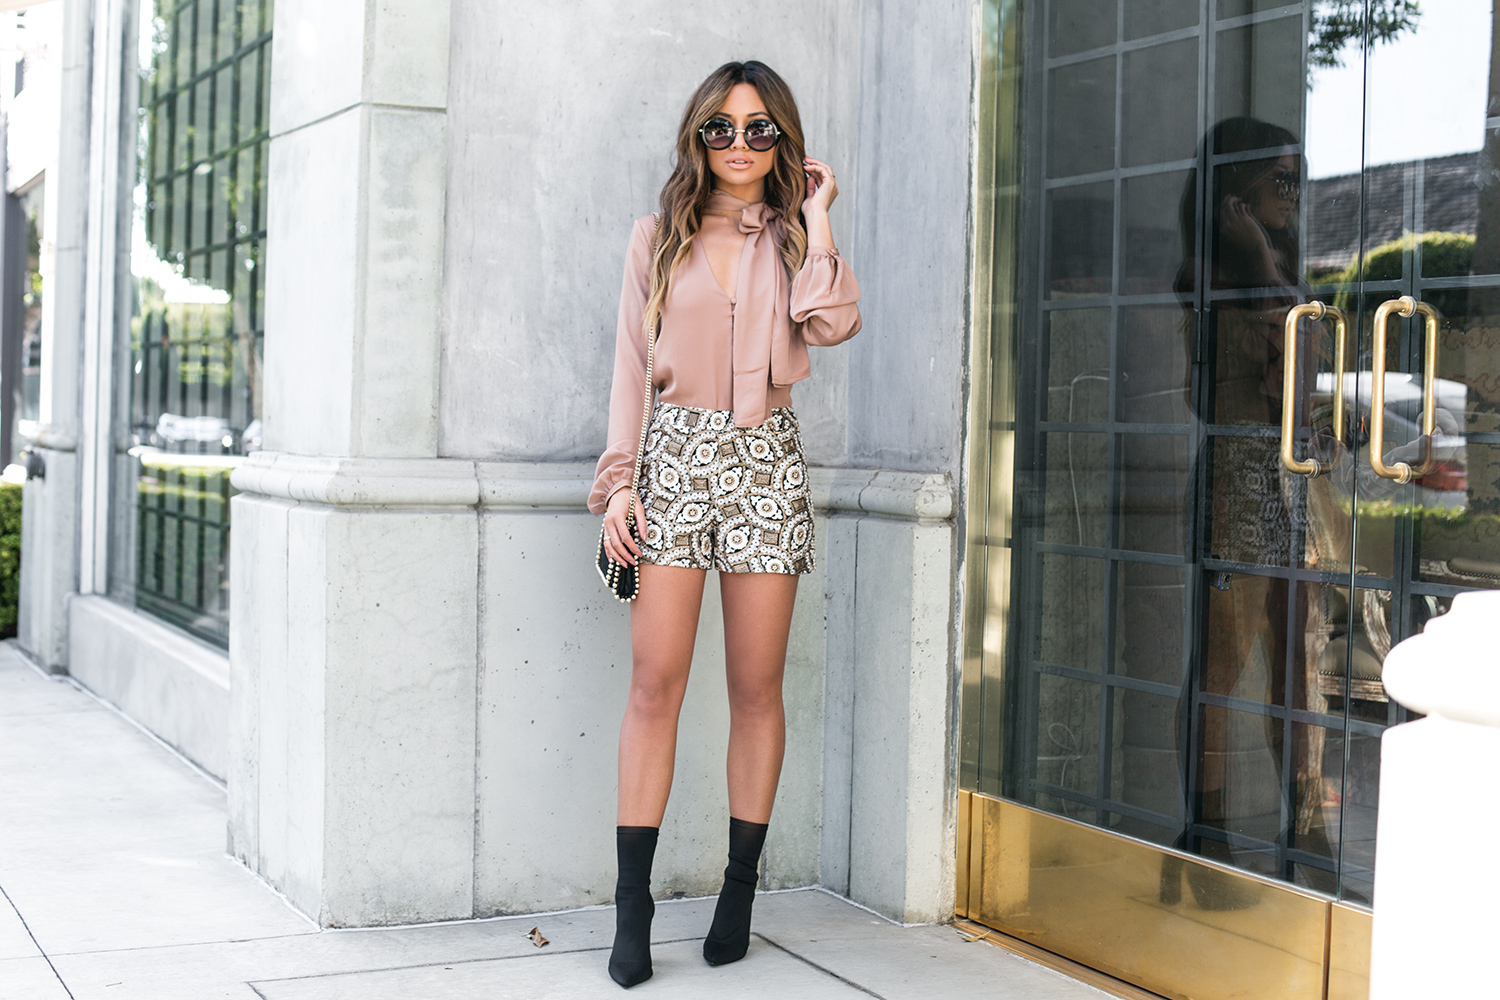 Jessi Malay wearing Alice and Olivia Shorts and L'Acadamie top